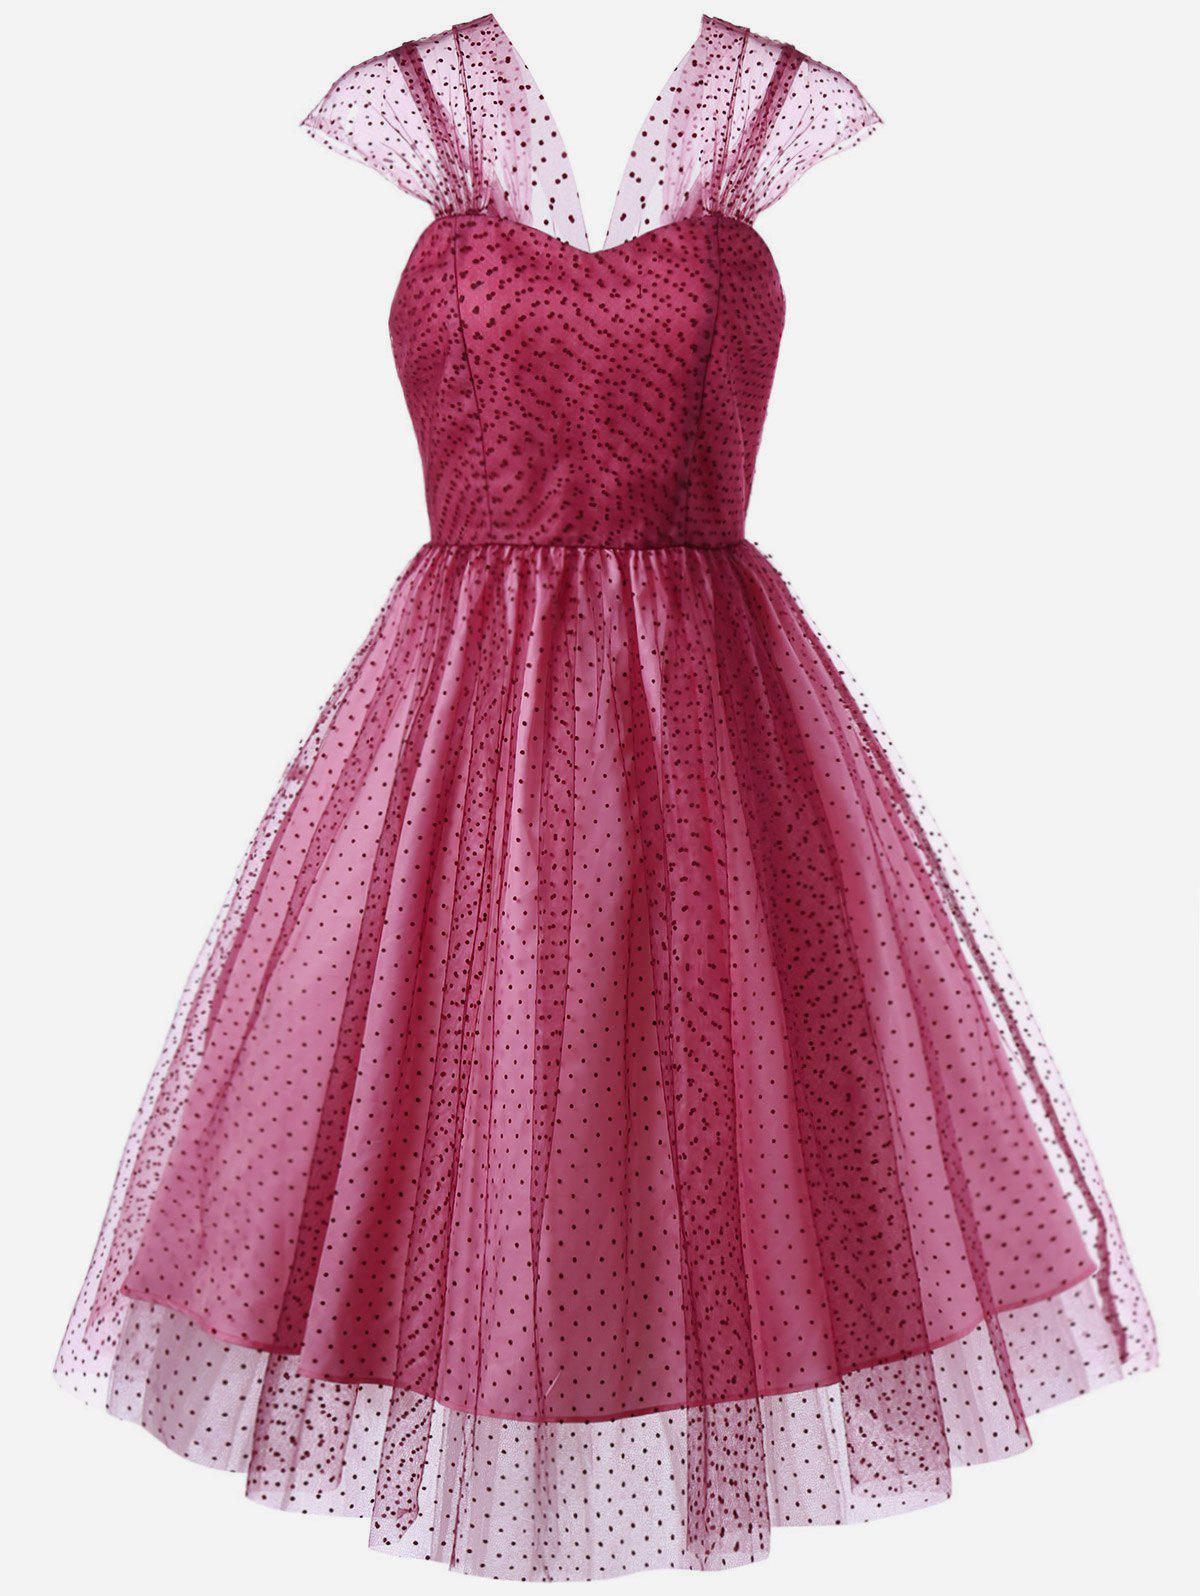 Polka Dot Bandeau Tulle Cocktail Dress - ROSE MADDER 2XL